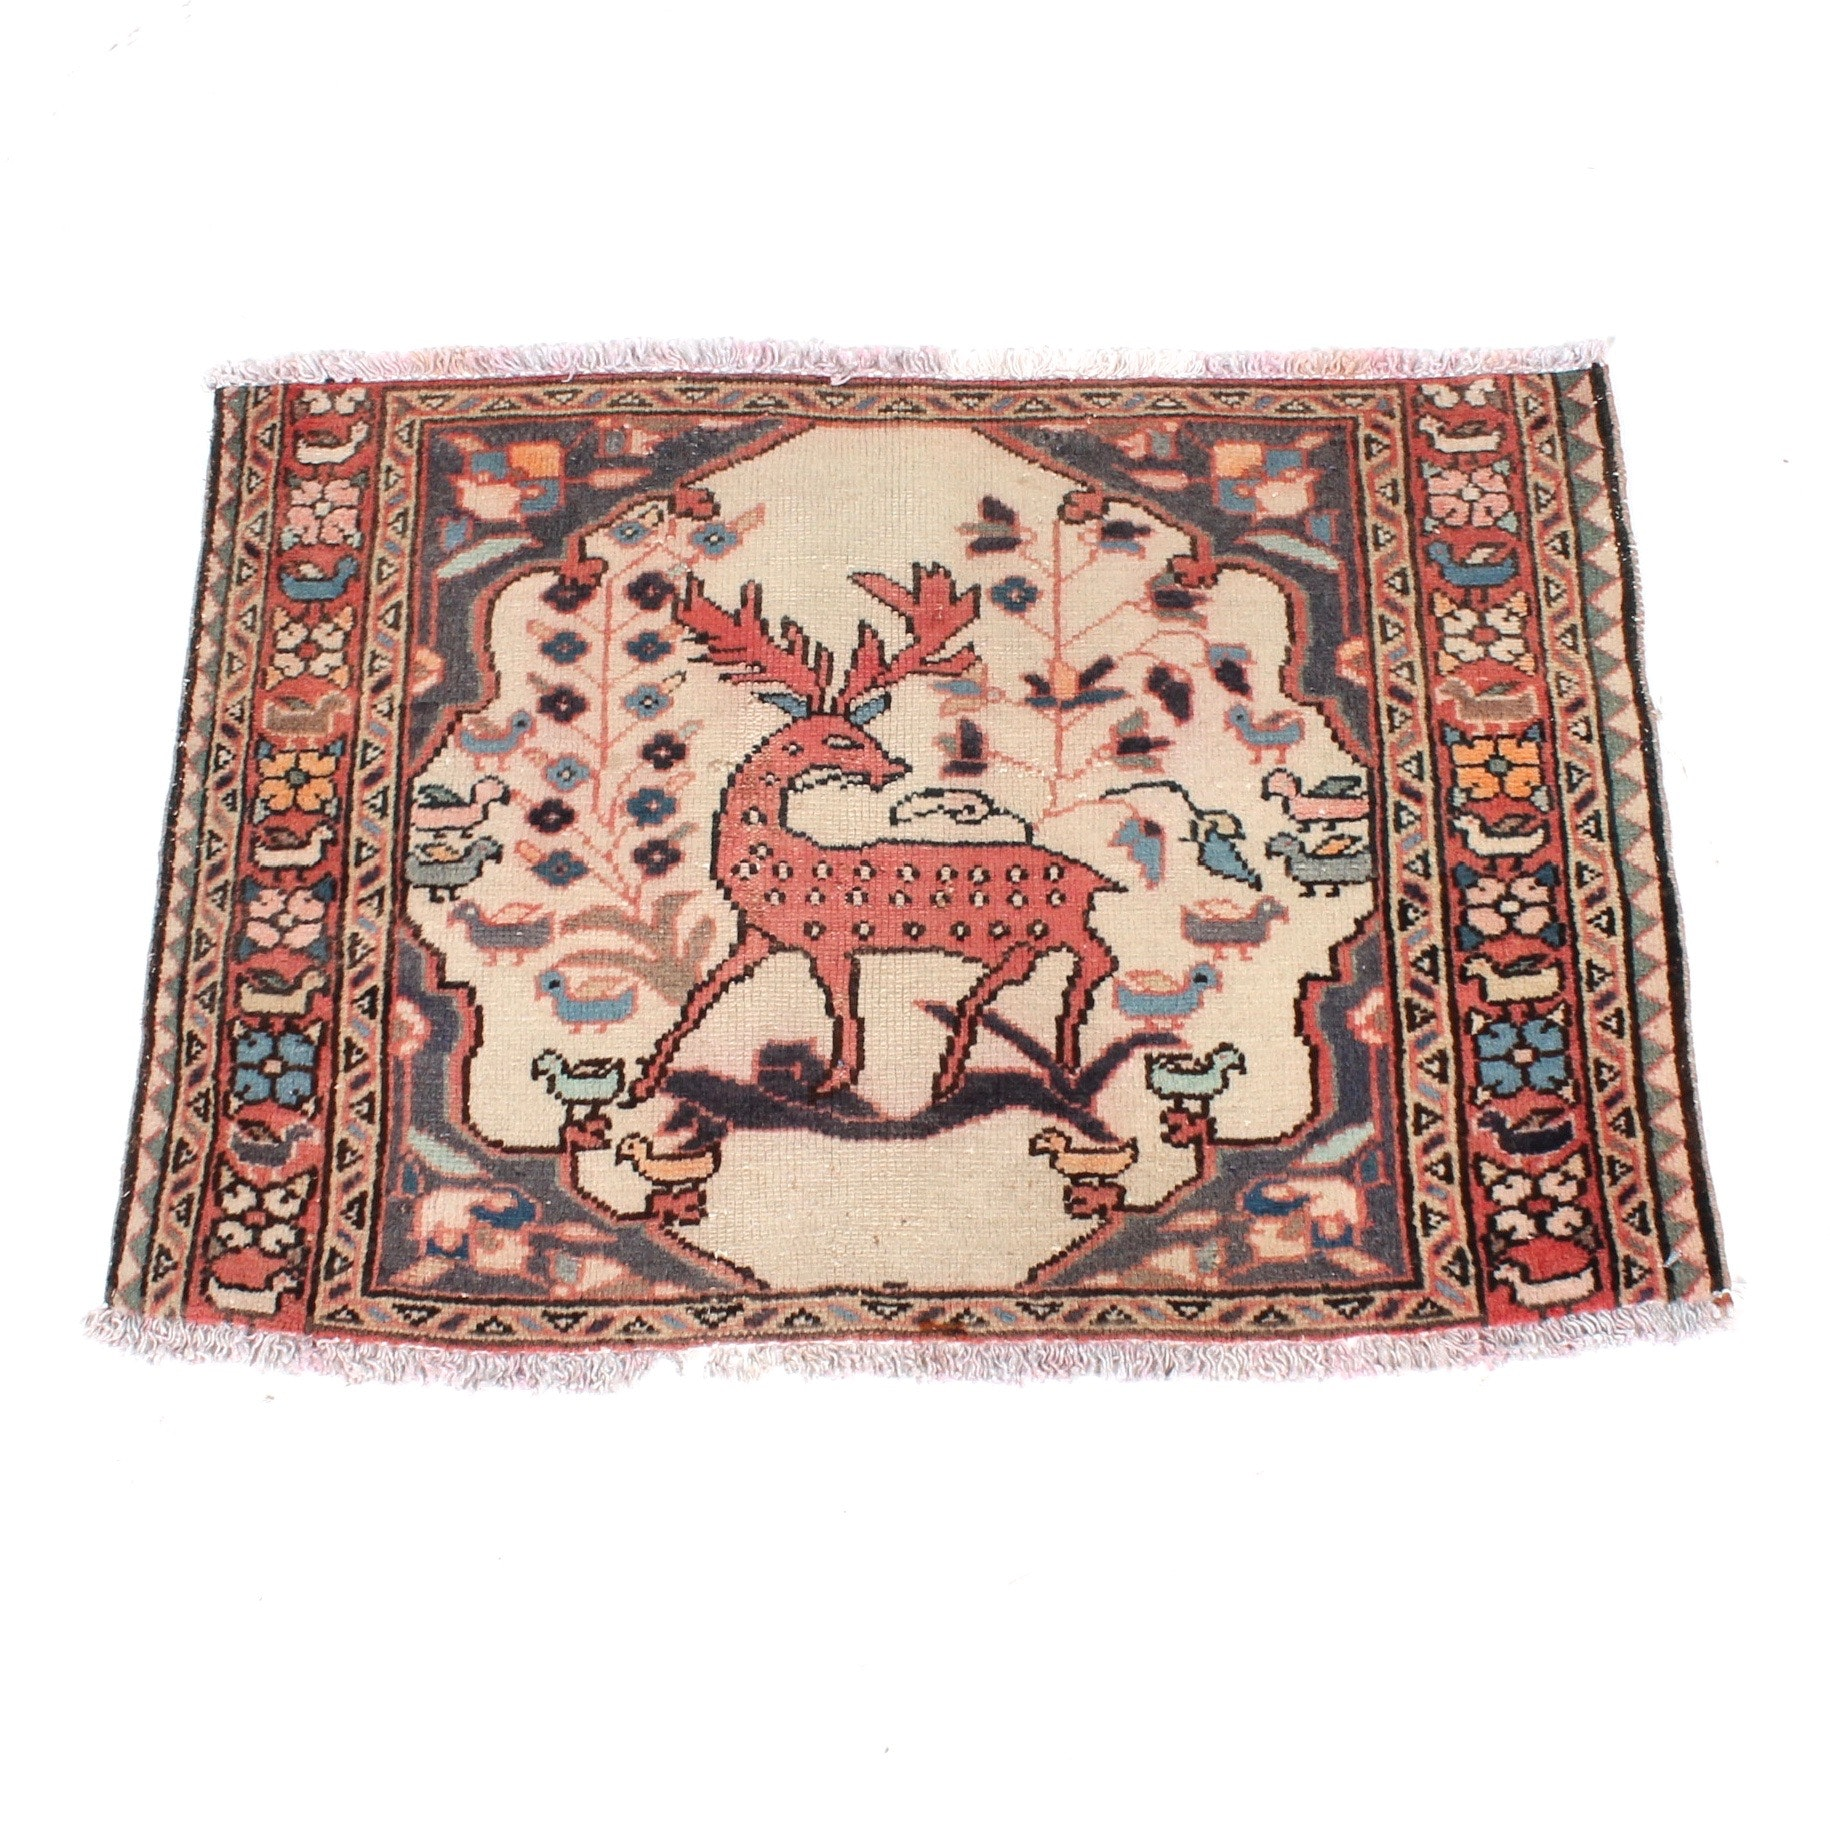 Semi-Antique Hand-Knotted Persian Malayer Pictorial Rug